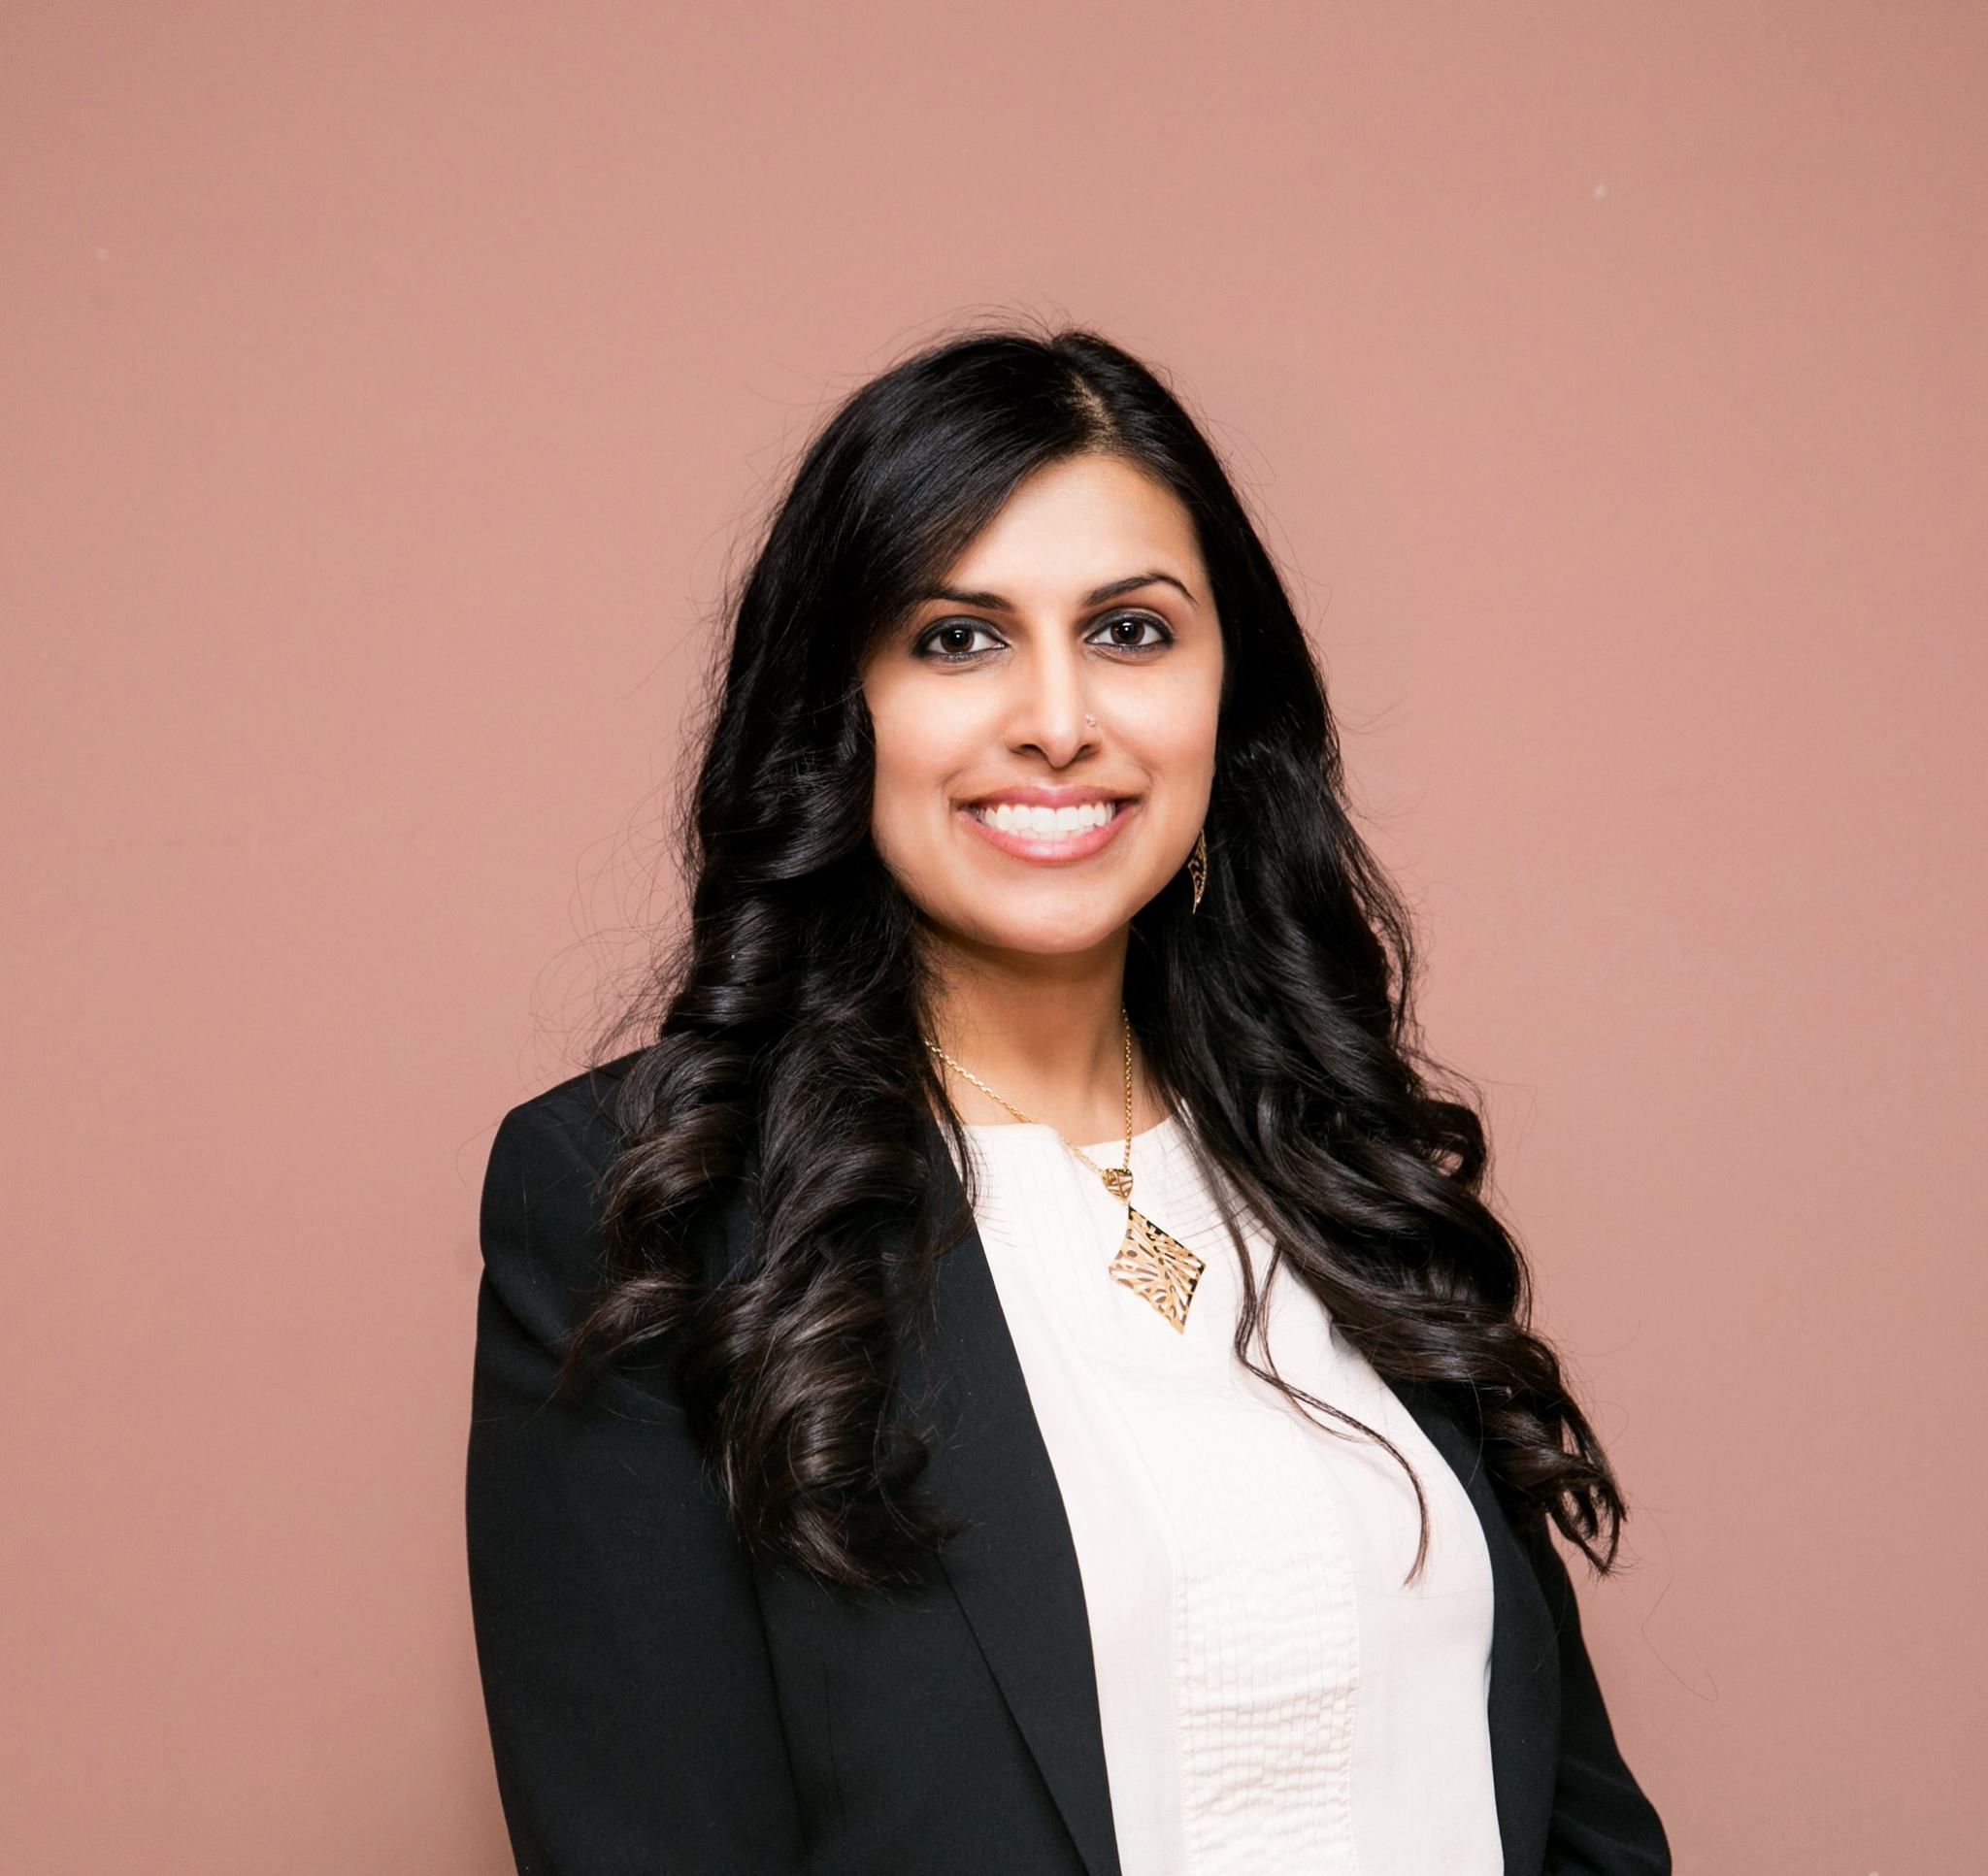 Sadaf Jaffer, Mayor of Montgomery Township in New Jersey, is the first female Pakistani American mayor in U.S. history. - Jaffer is a post-doctoral research associate at the Princeton Institute for International and Regional Studies. She received her Ph.D. from Harvard University.